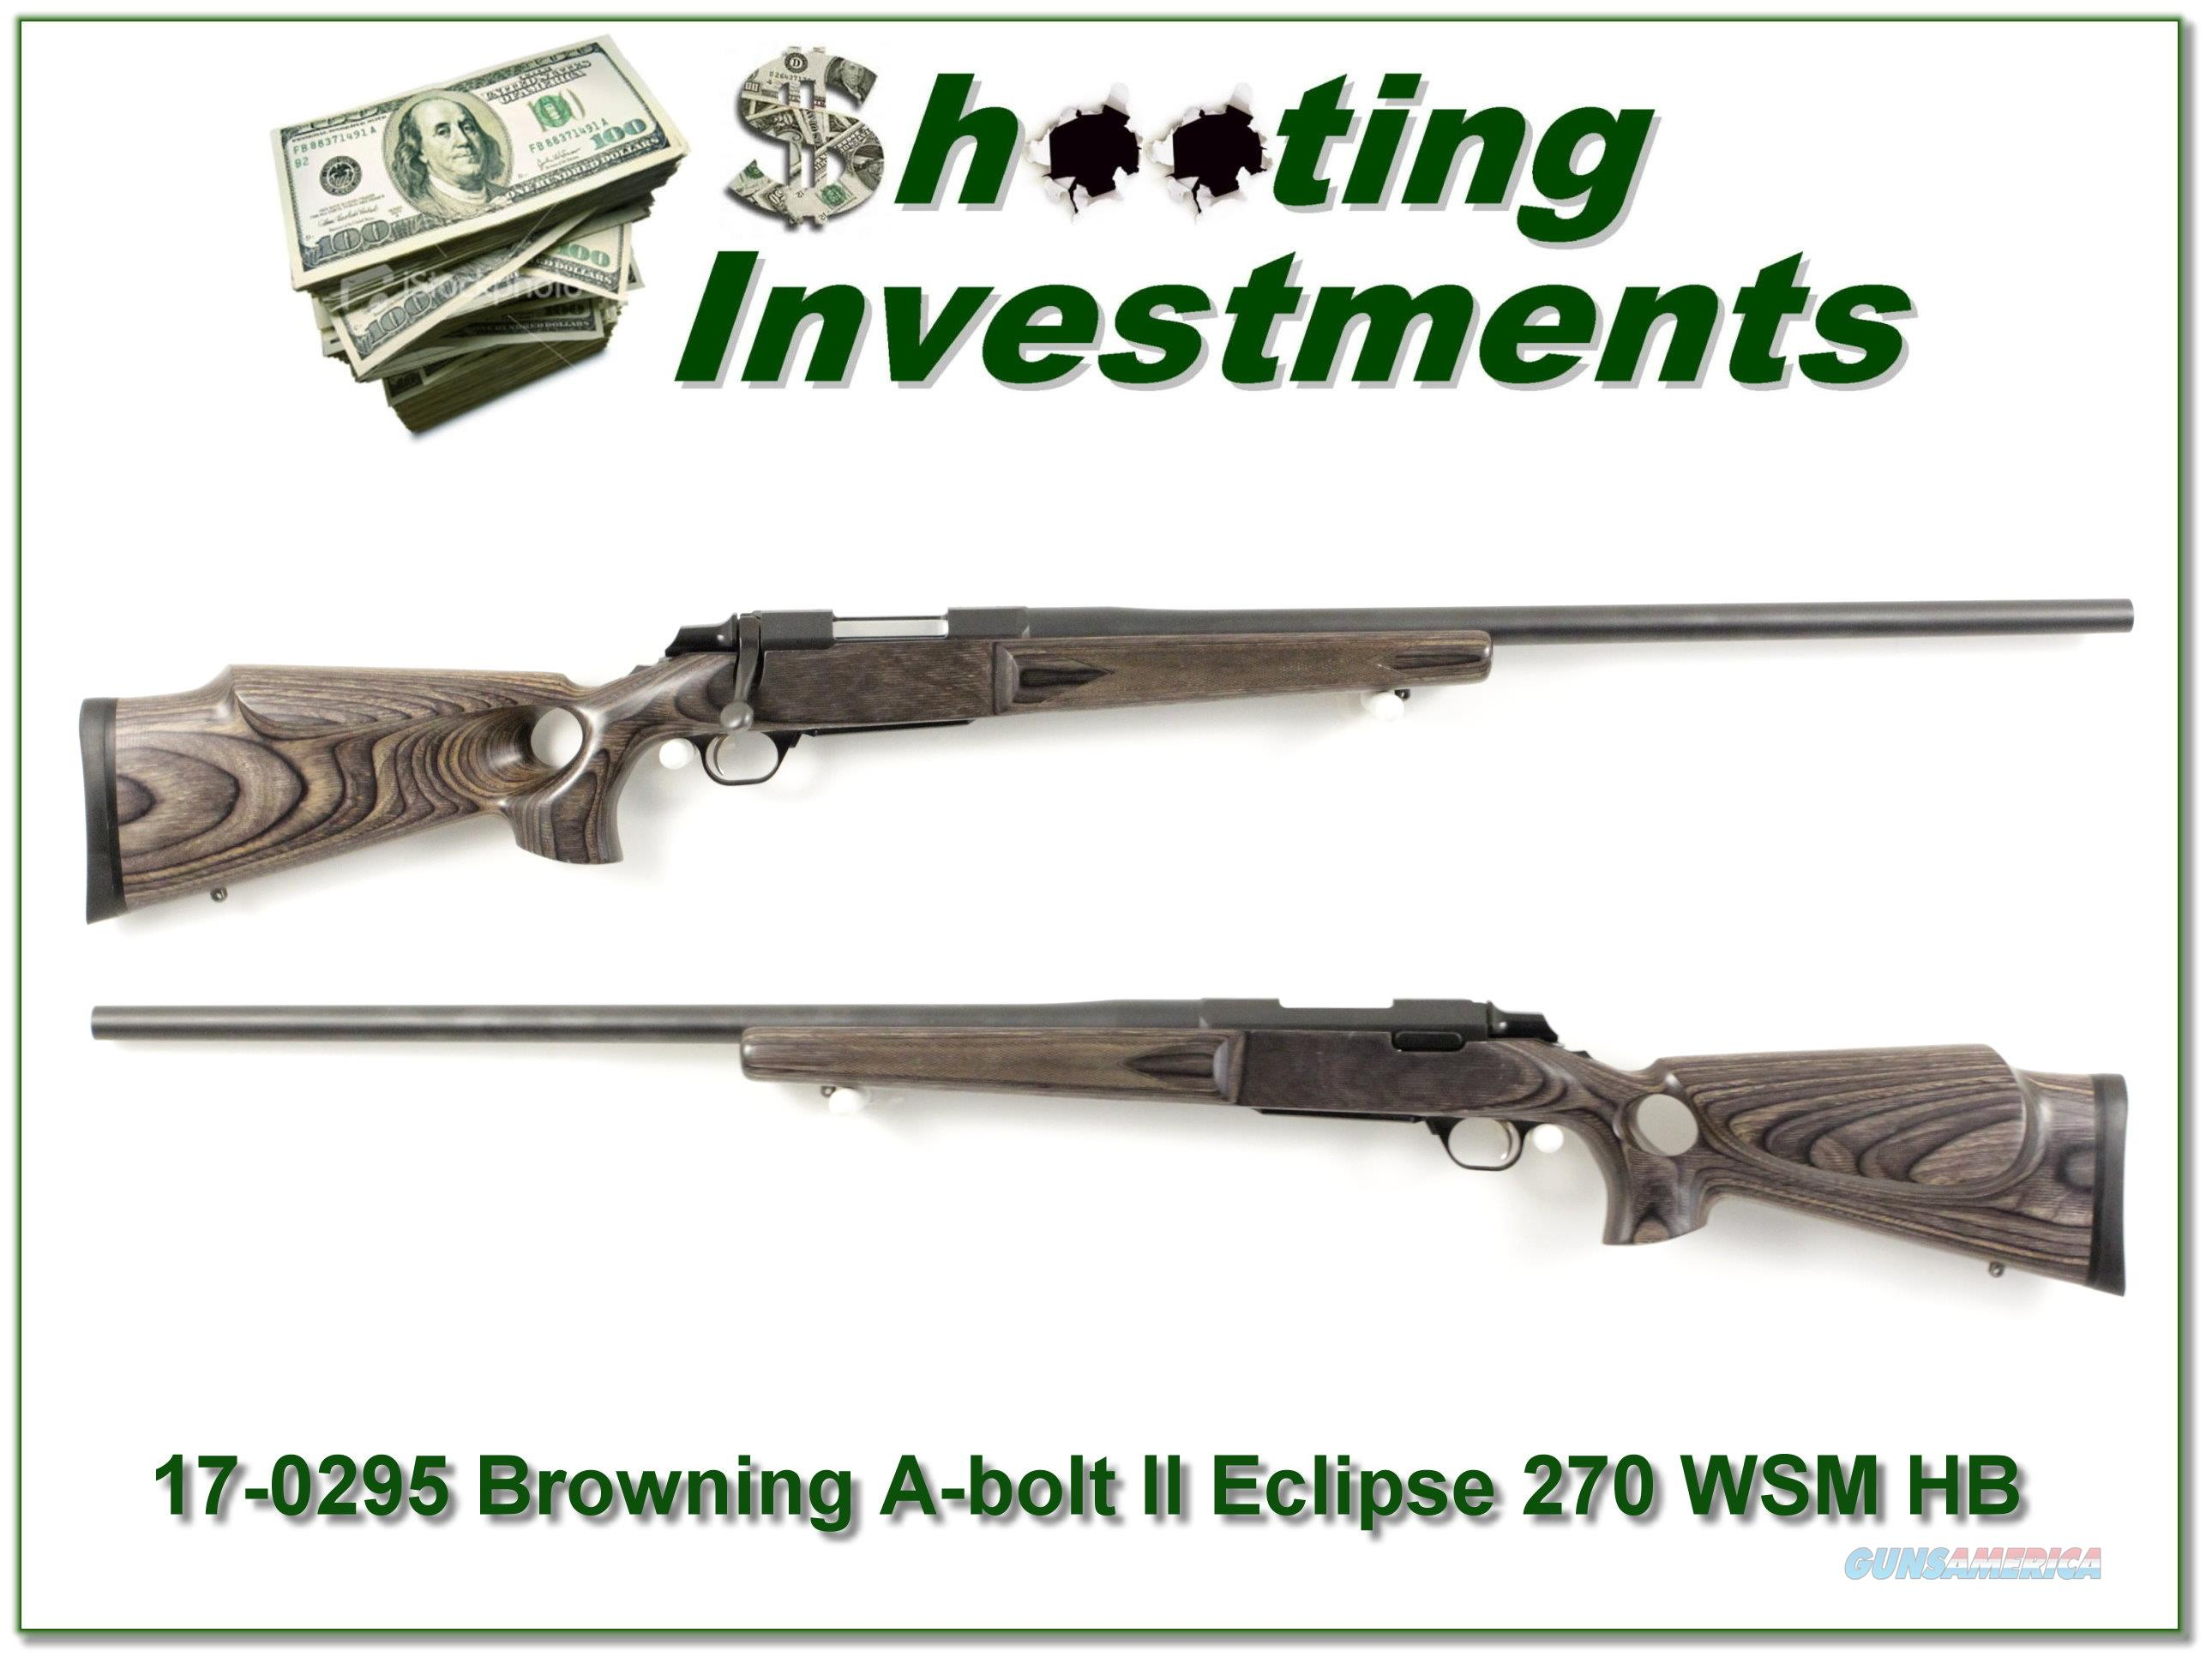 Browning A-bolt Eclipse Laminated 270 WSM HB  Guns > Rifles > Browning Rifles > Bolt Action > Hunting > Blue